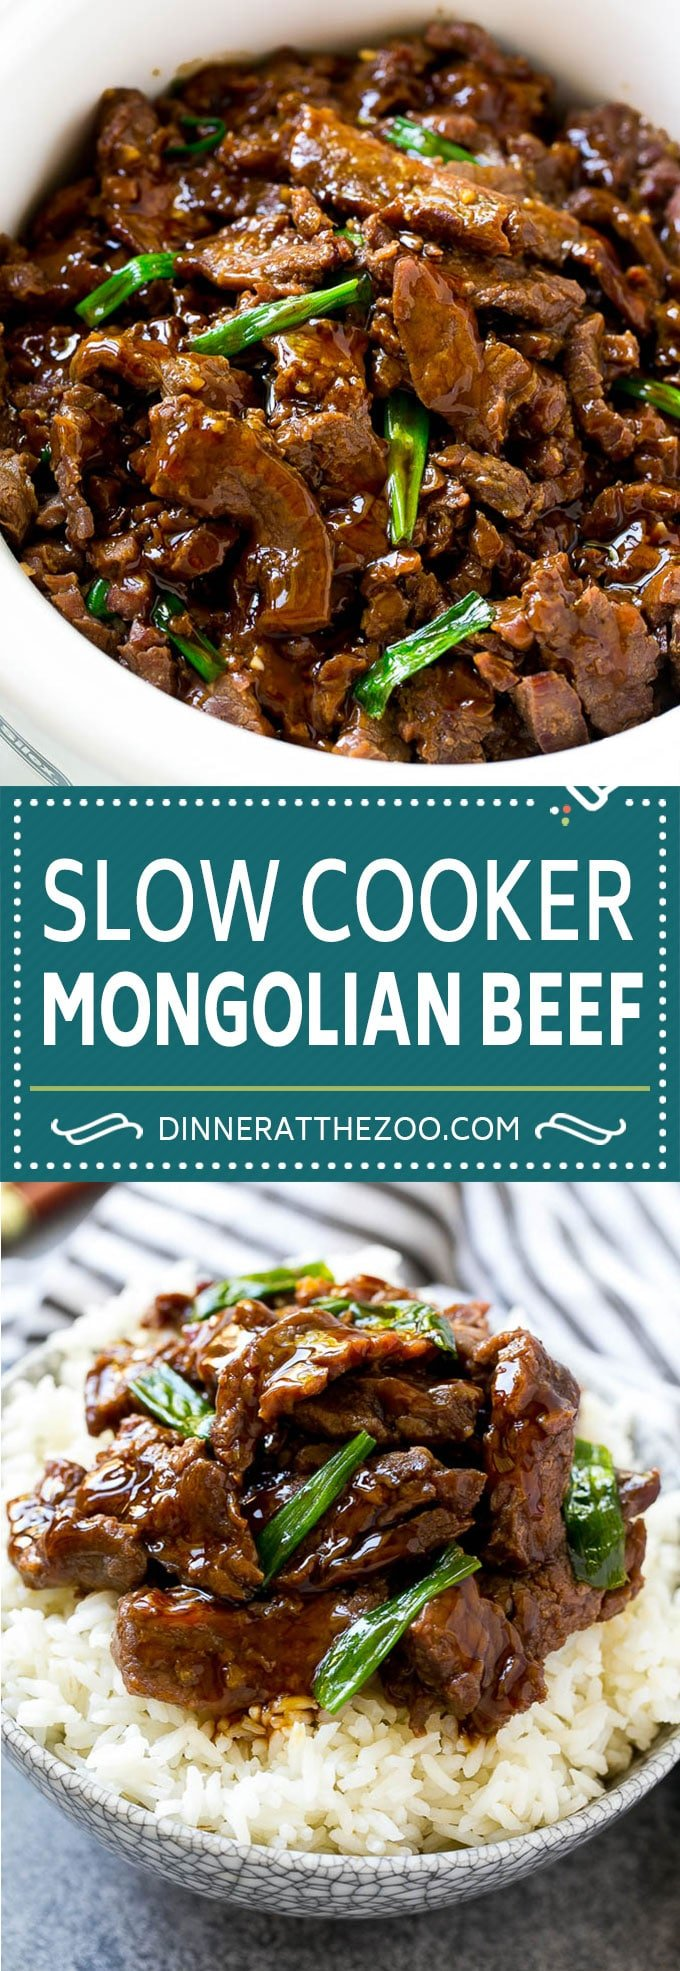 Slow Cooker Mongolian Beef Recipe | Crock Pot Mongolian Beef | Asian Beef Recipe | Slow Cooker Beef #beef #slowcooker #crockpot #asianfood #dinneratthezoo